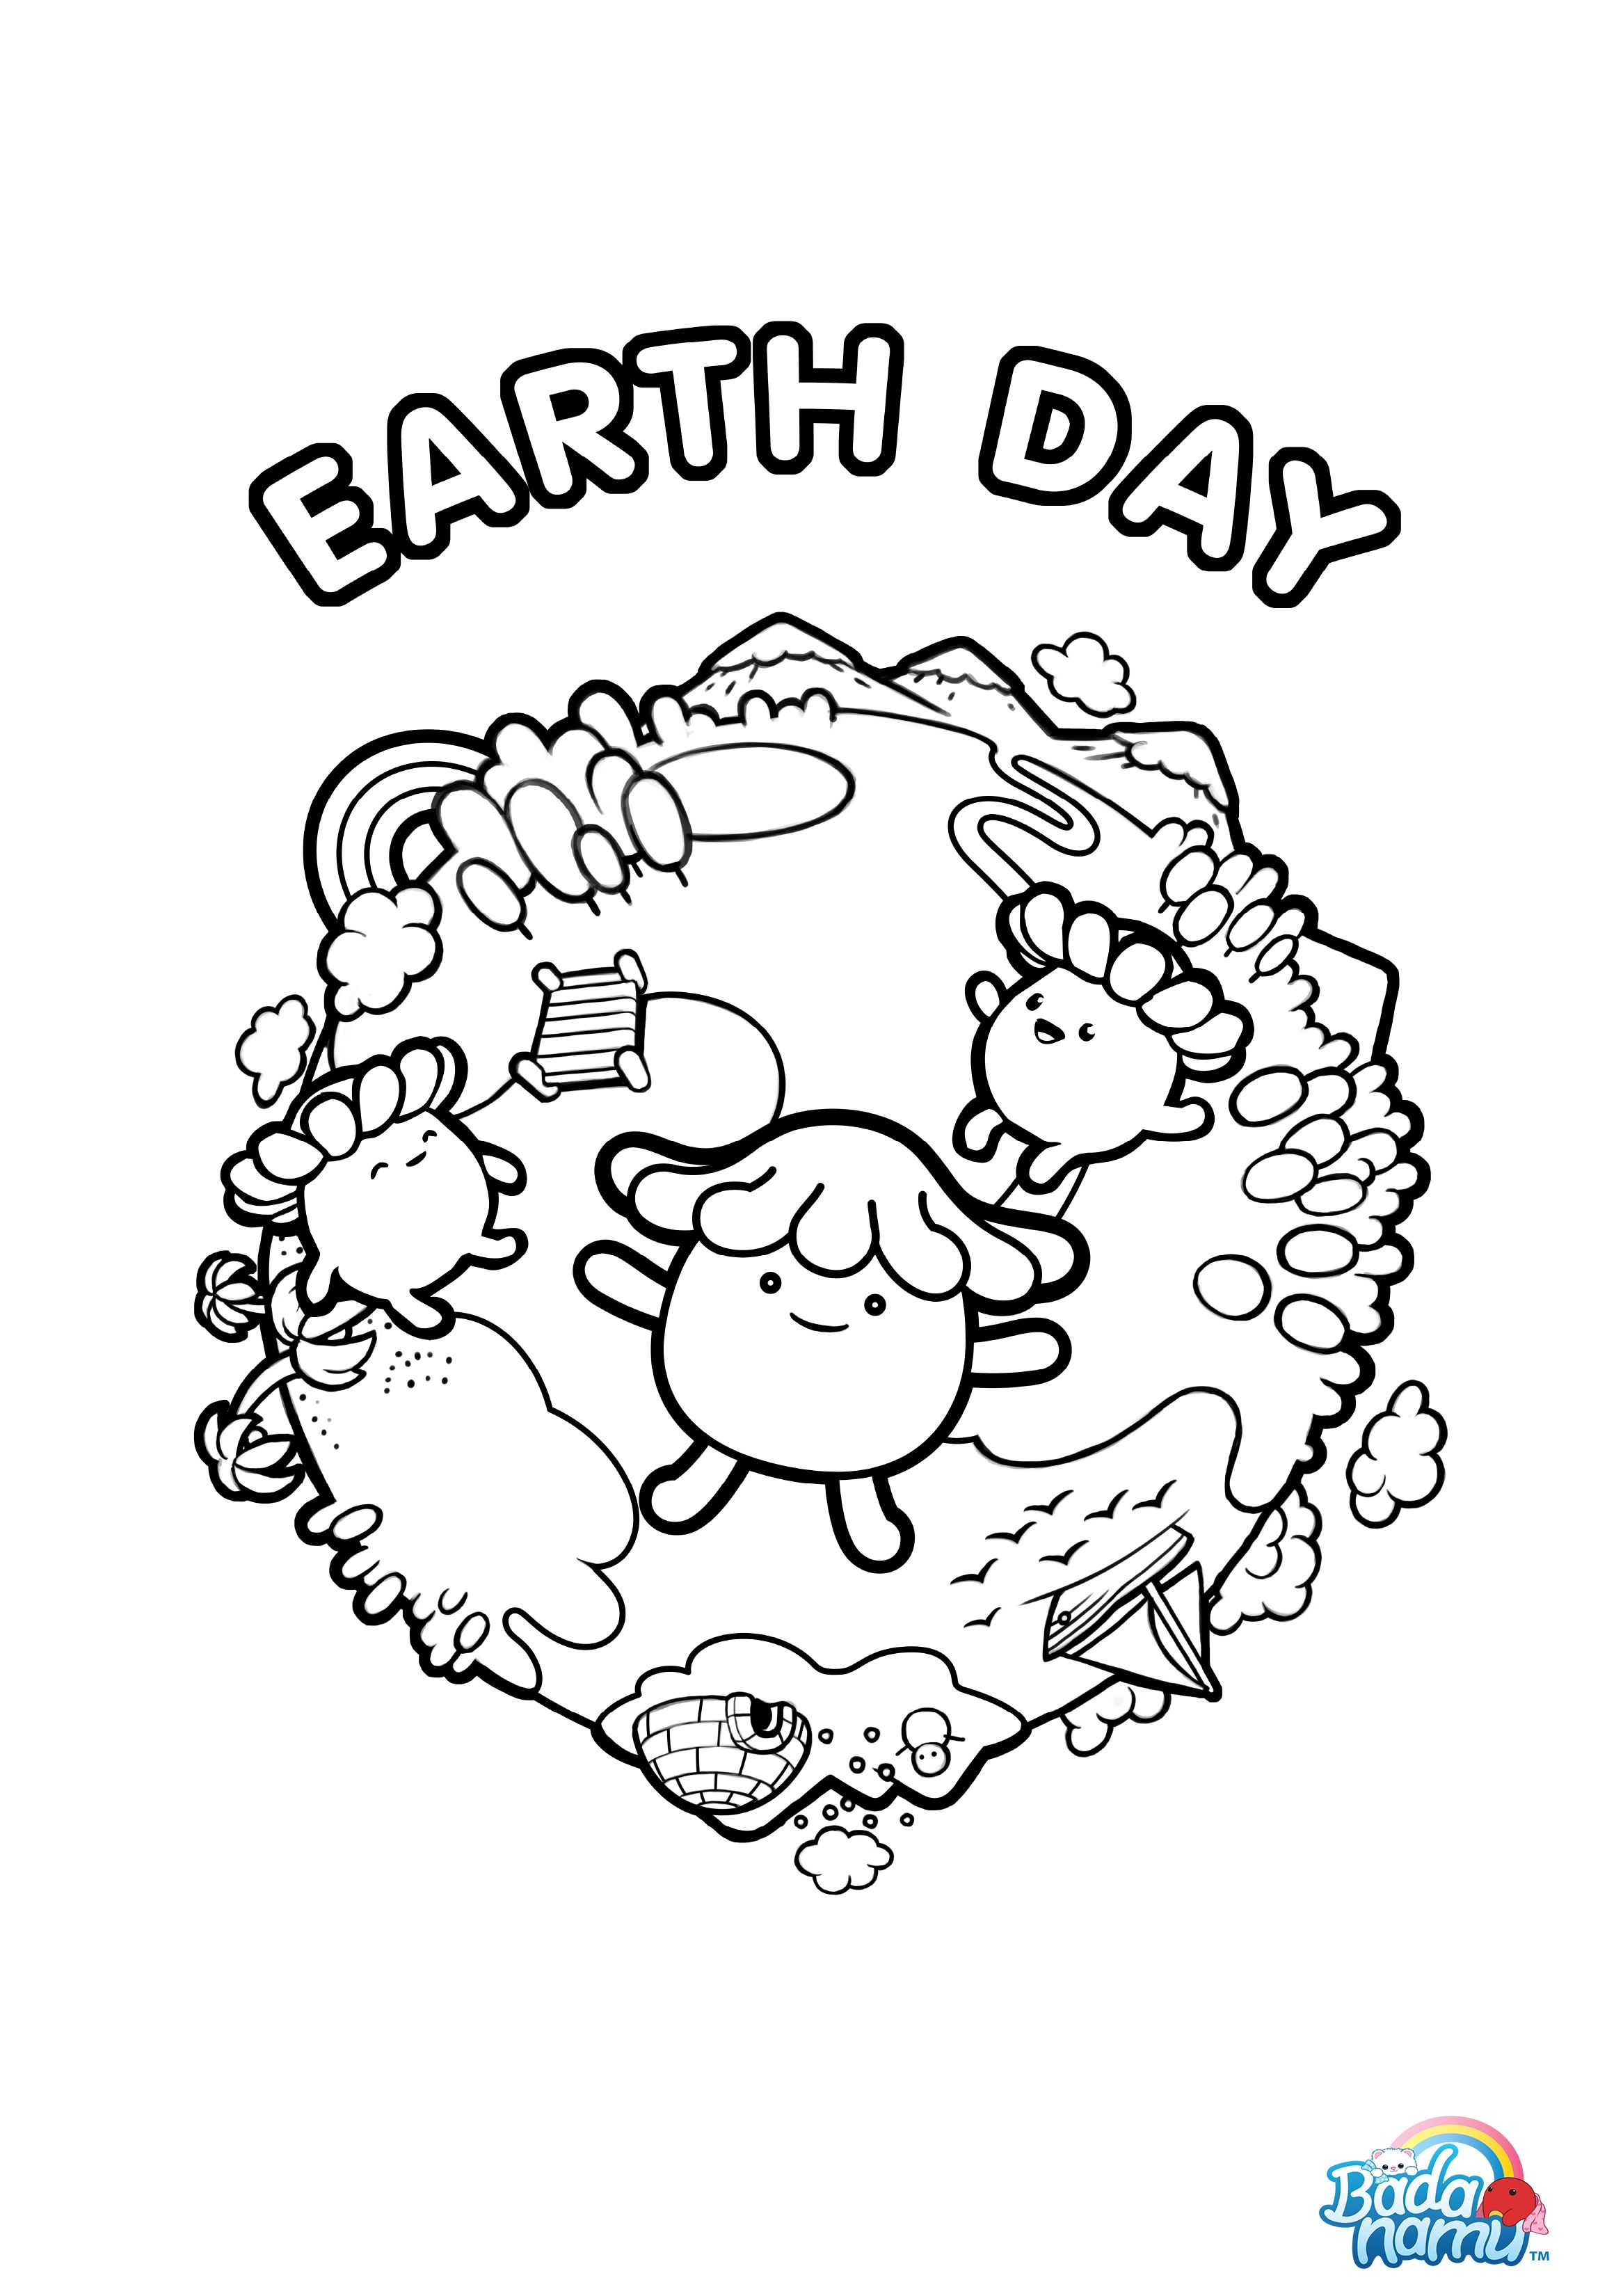 Help Our Eccos Celebrate Earth Day By Coloring This Fun Coloring